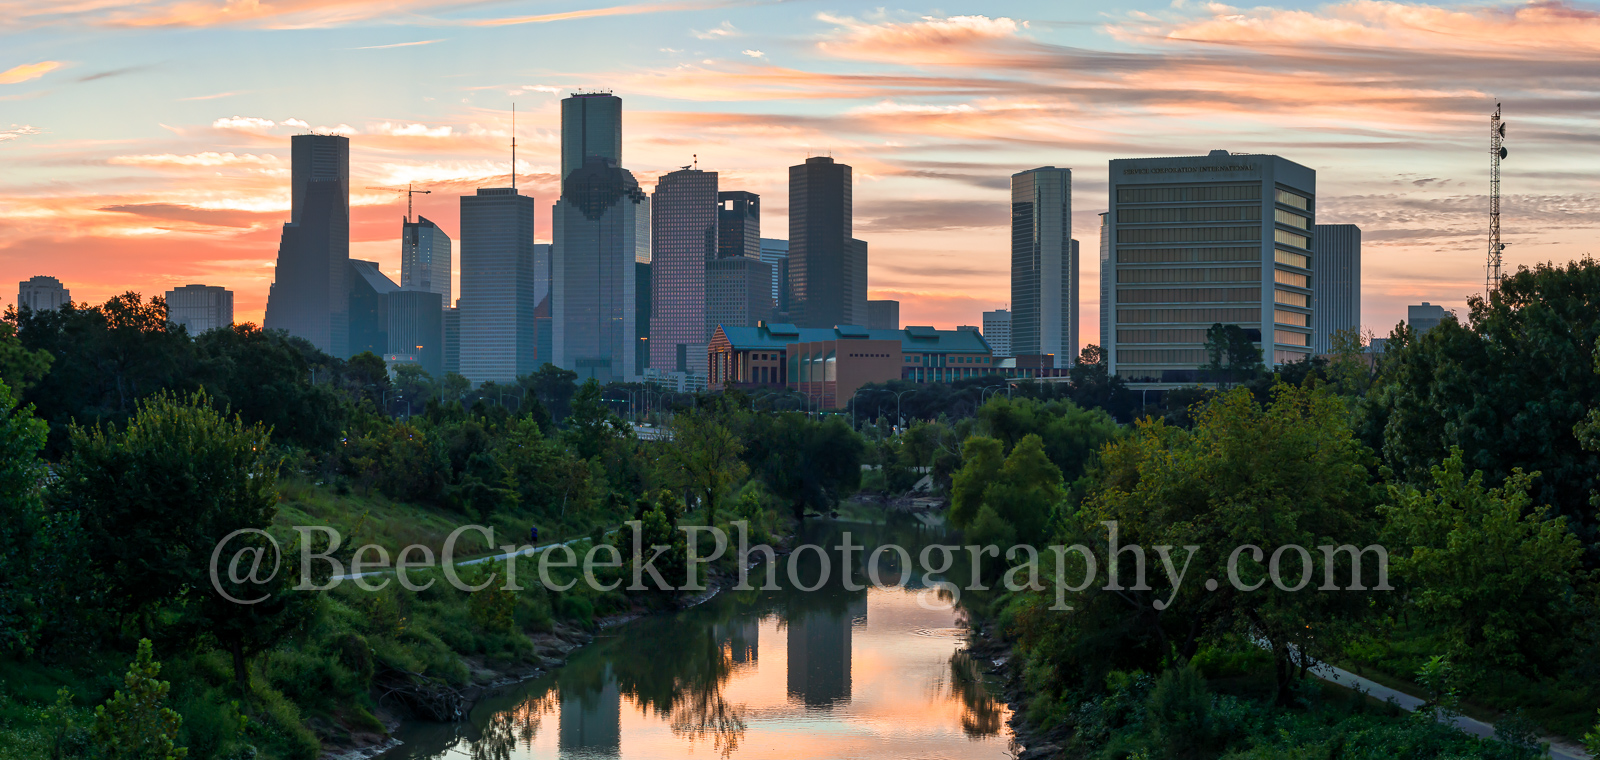 Houston, Sunrise, Buffalo Bayou skyline, buffalo bayou, pano, panorama, skyline, skylines, cityscape, cityscapes, downtown, water, reflections, pinks, oranges, sky, morning, city views, city,, photo